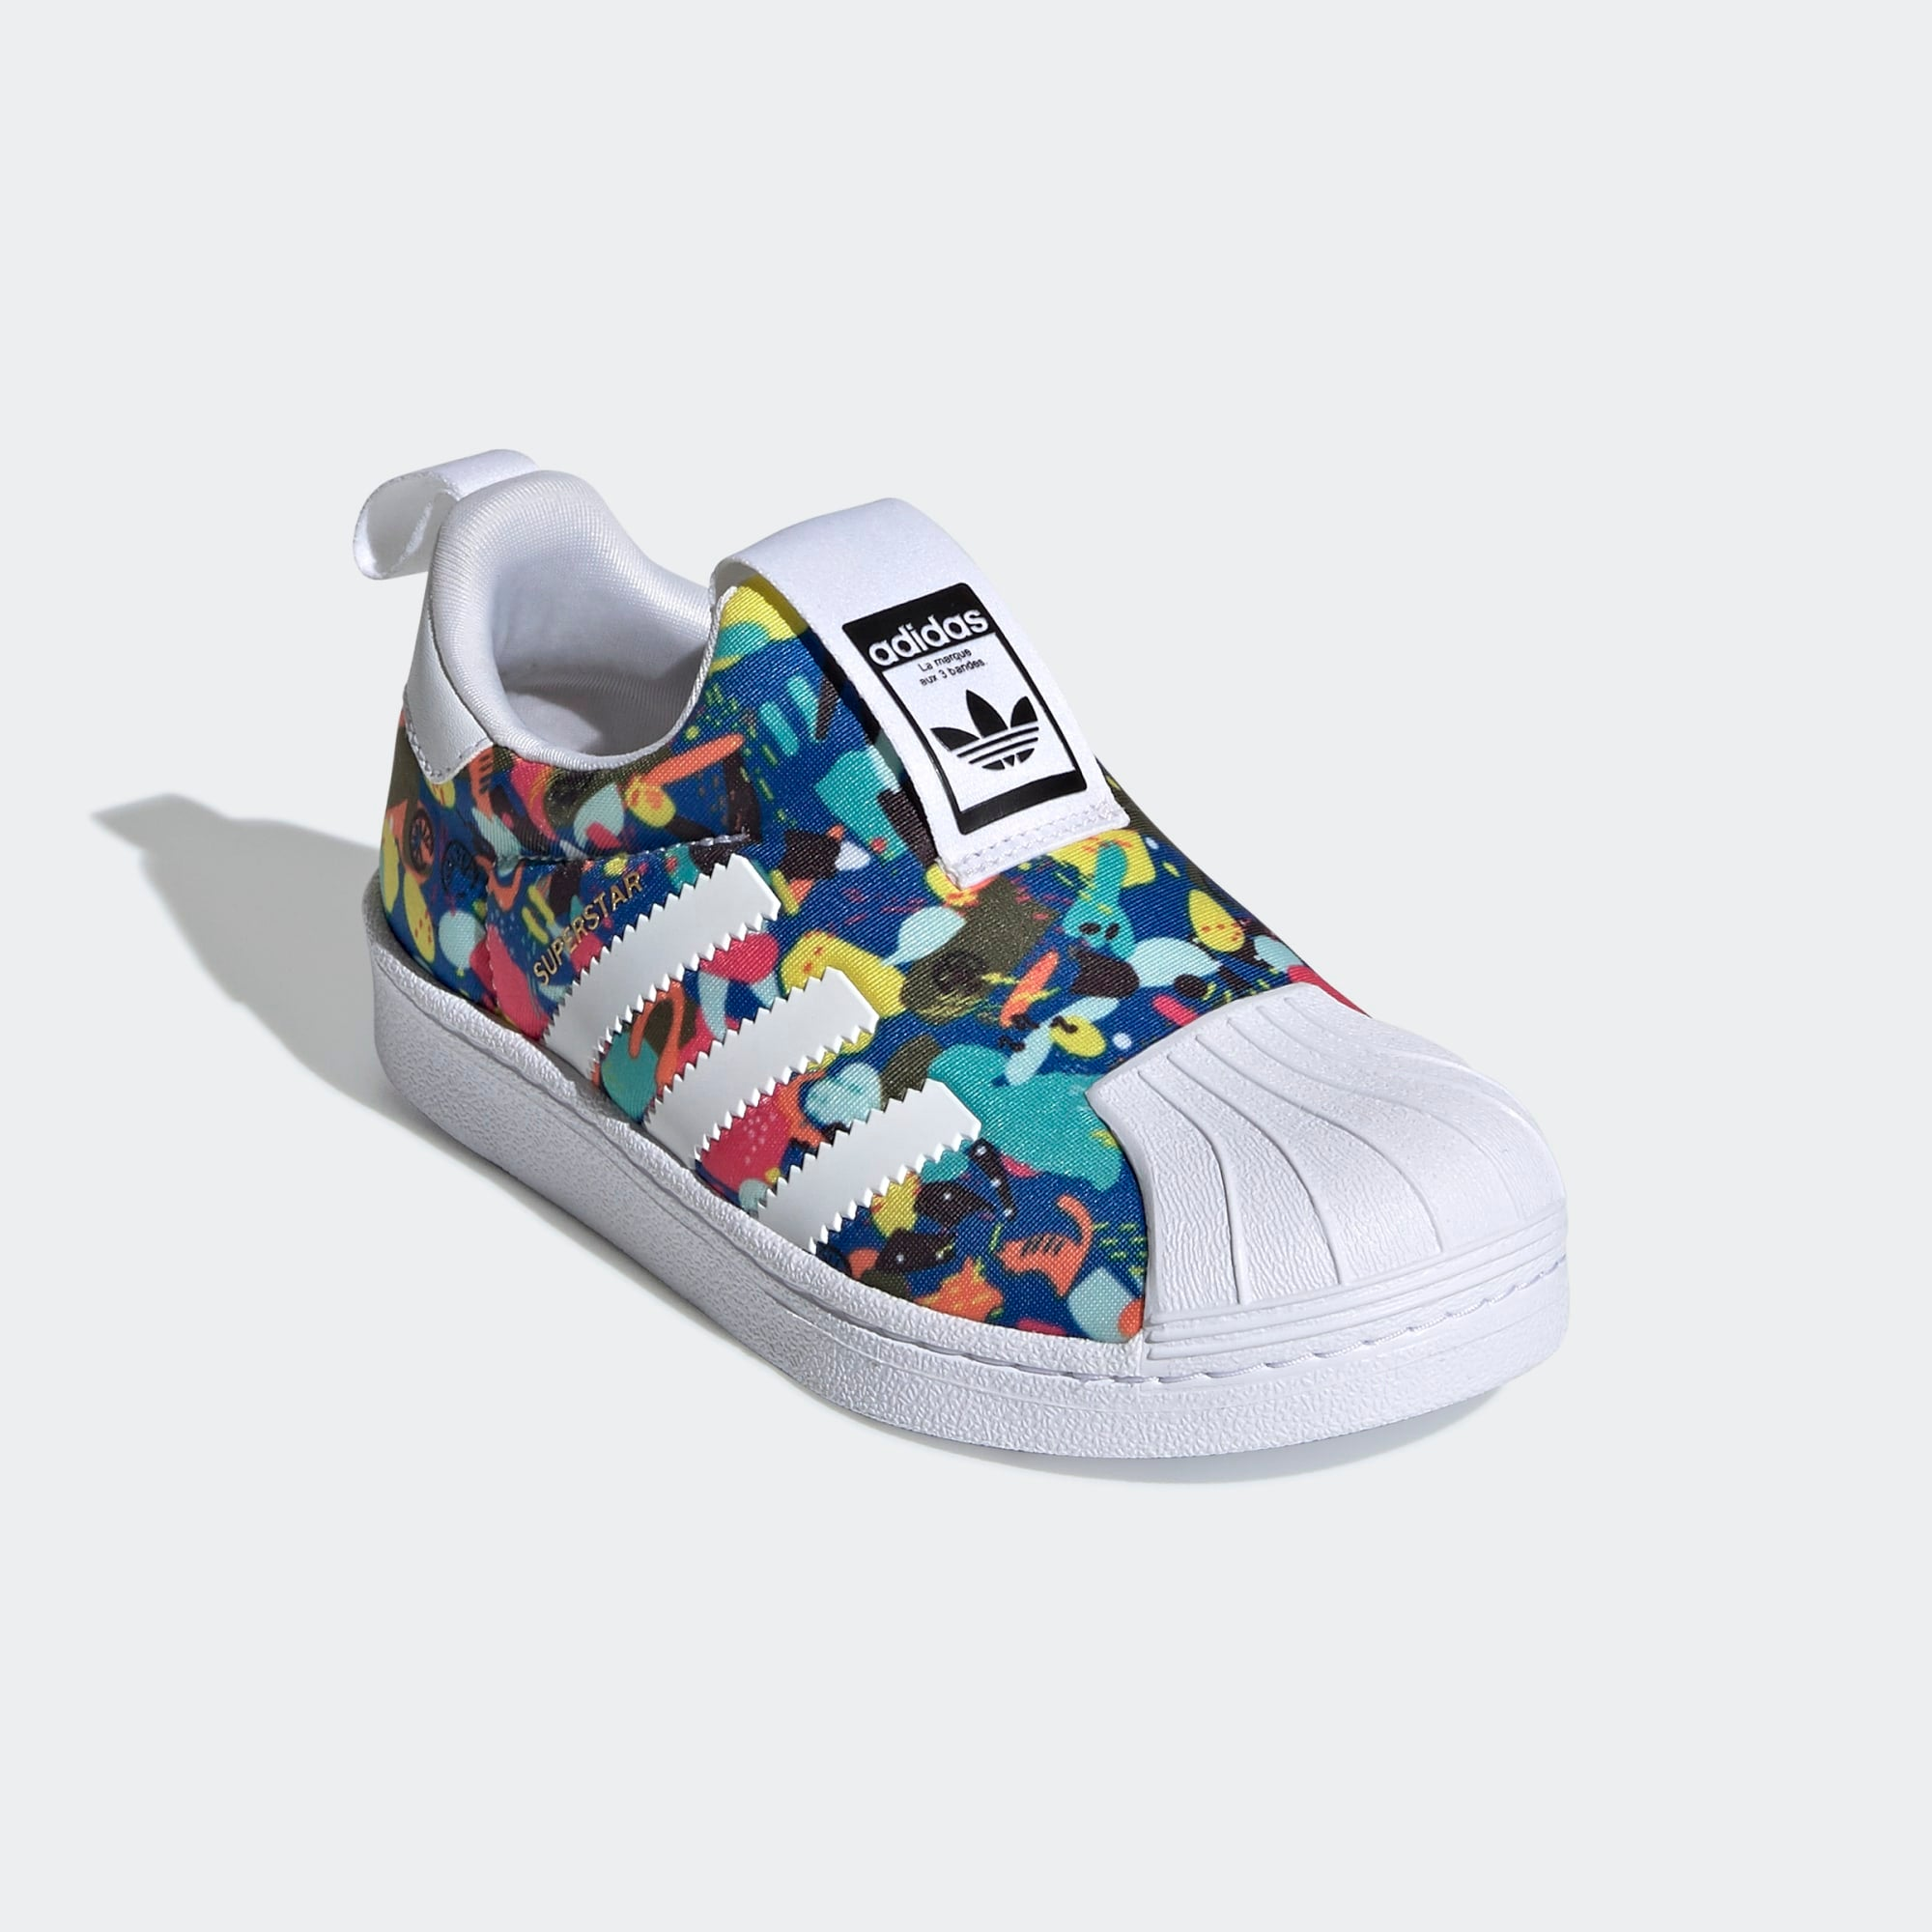 adidas Superstar 360 Slip On Sneakers Multicolor | Chicago City Sports